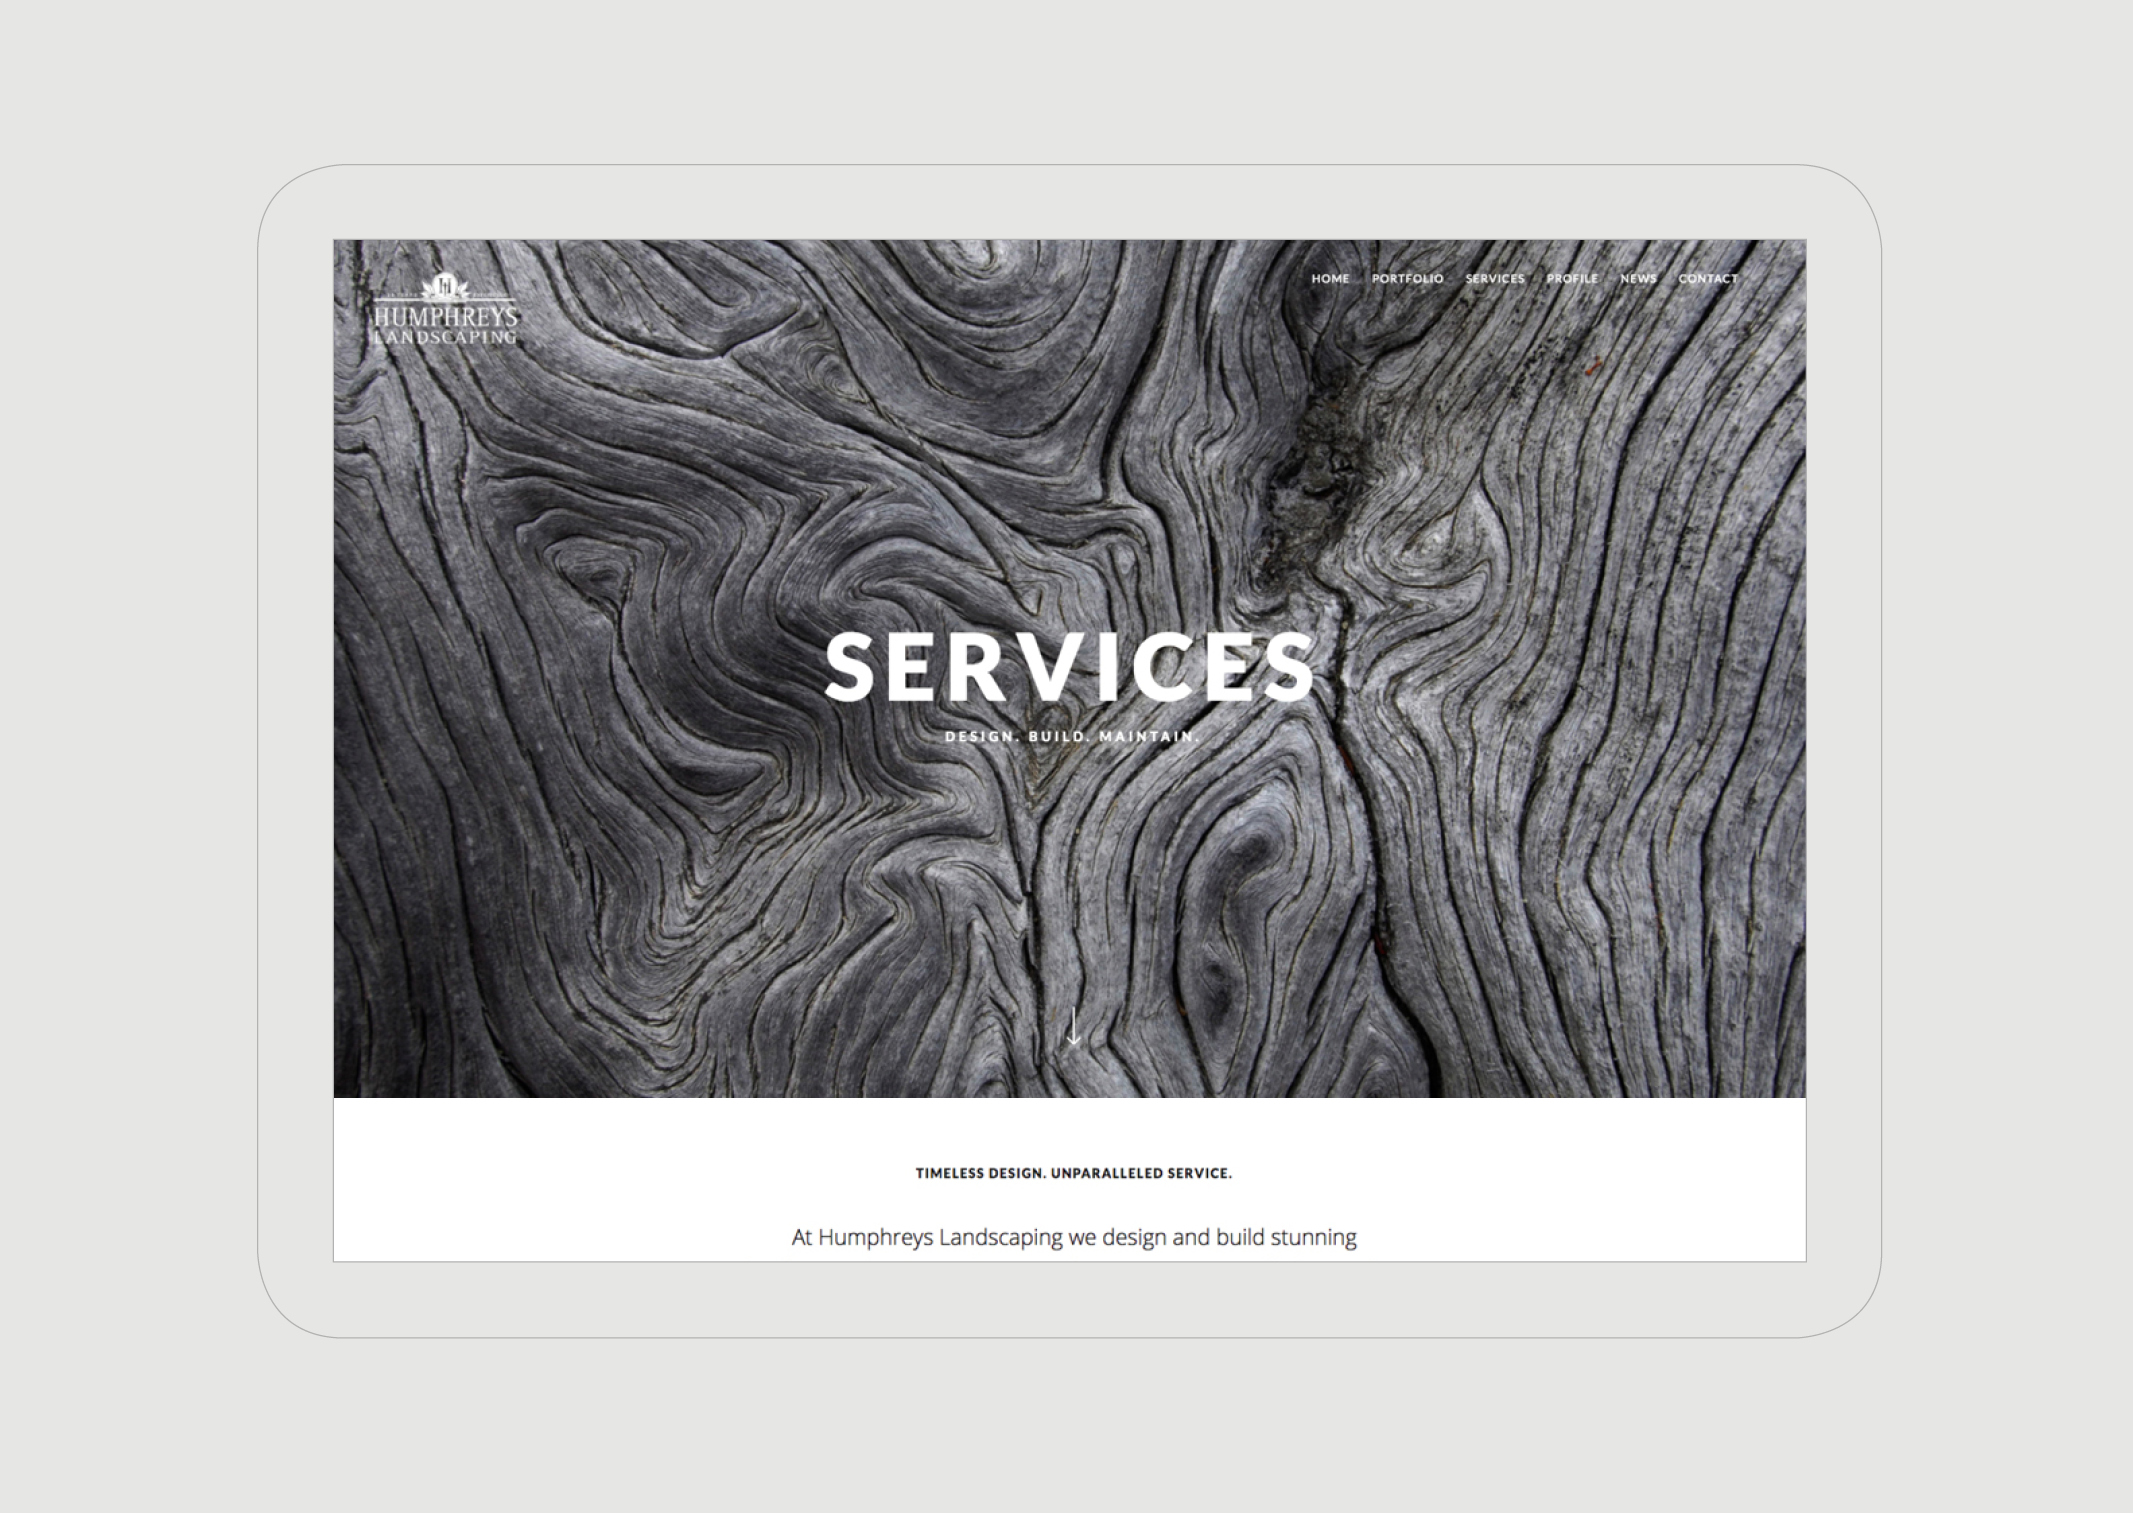 Humphreys Landscaping Website Services page featuring close up of wood knots